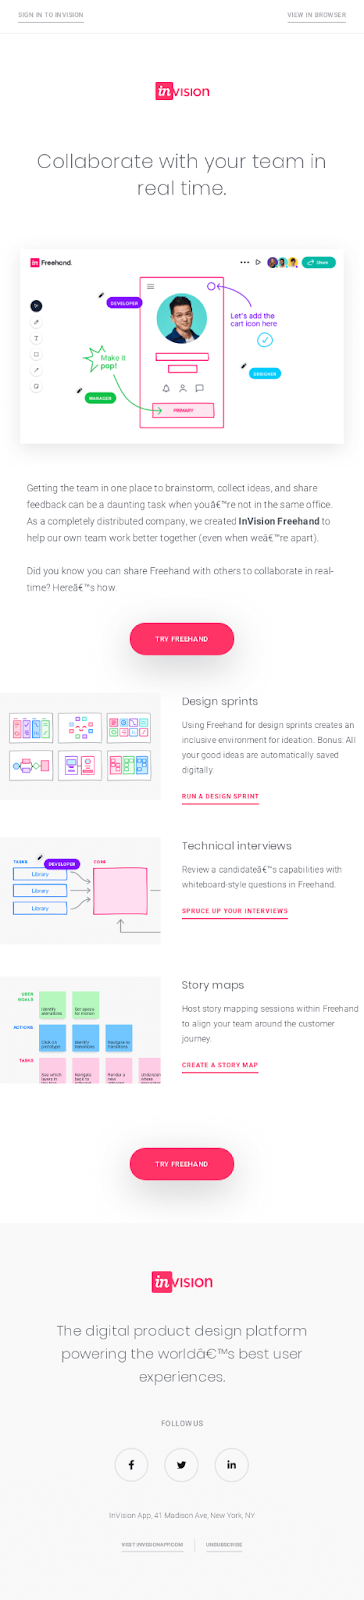 Email Blasts - Invision Example